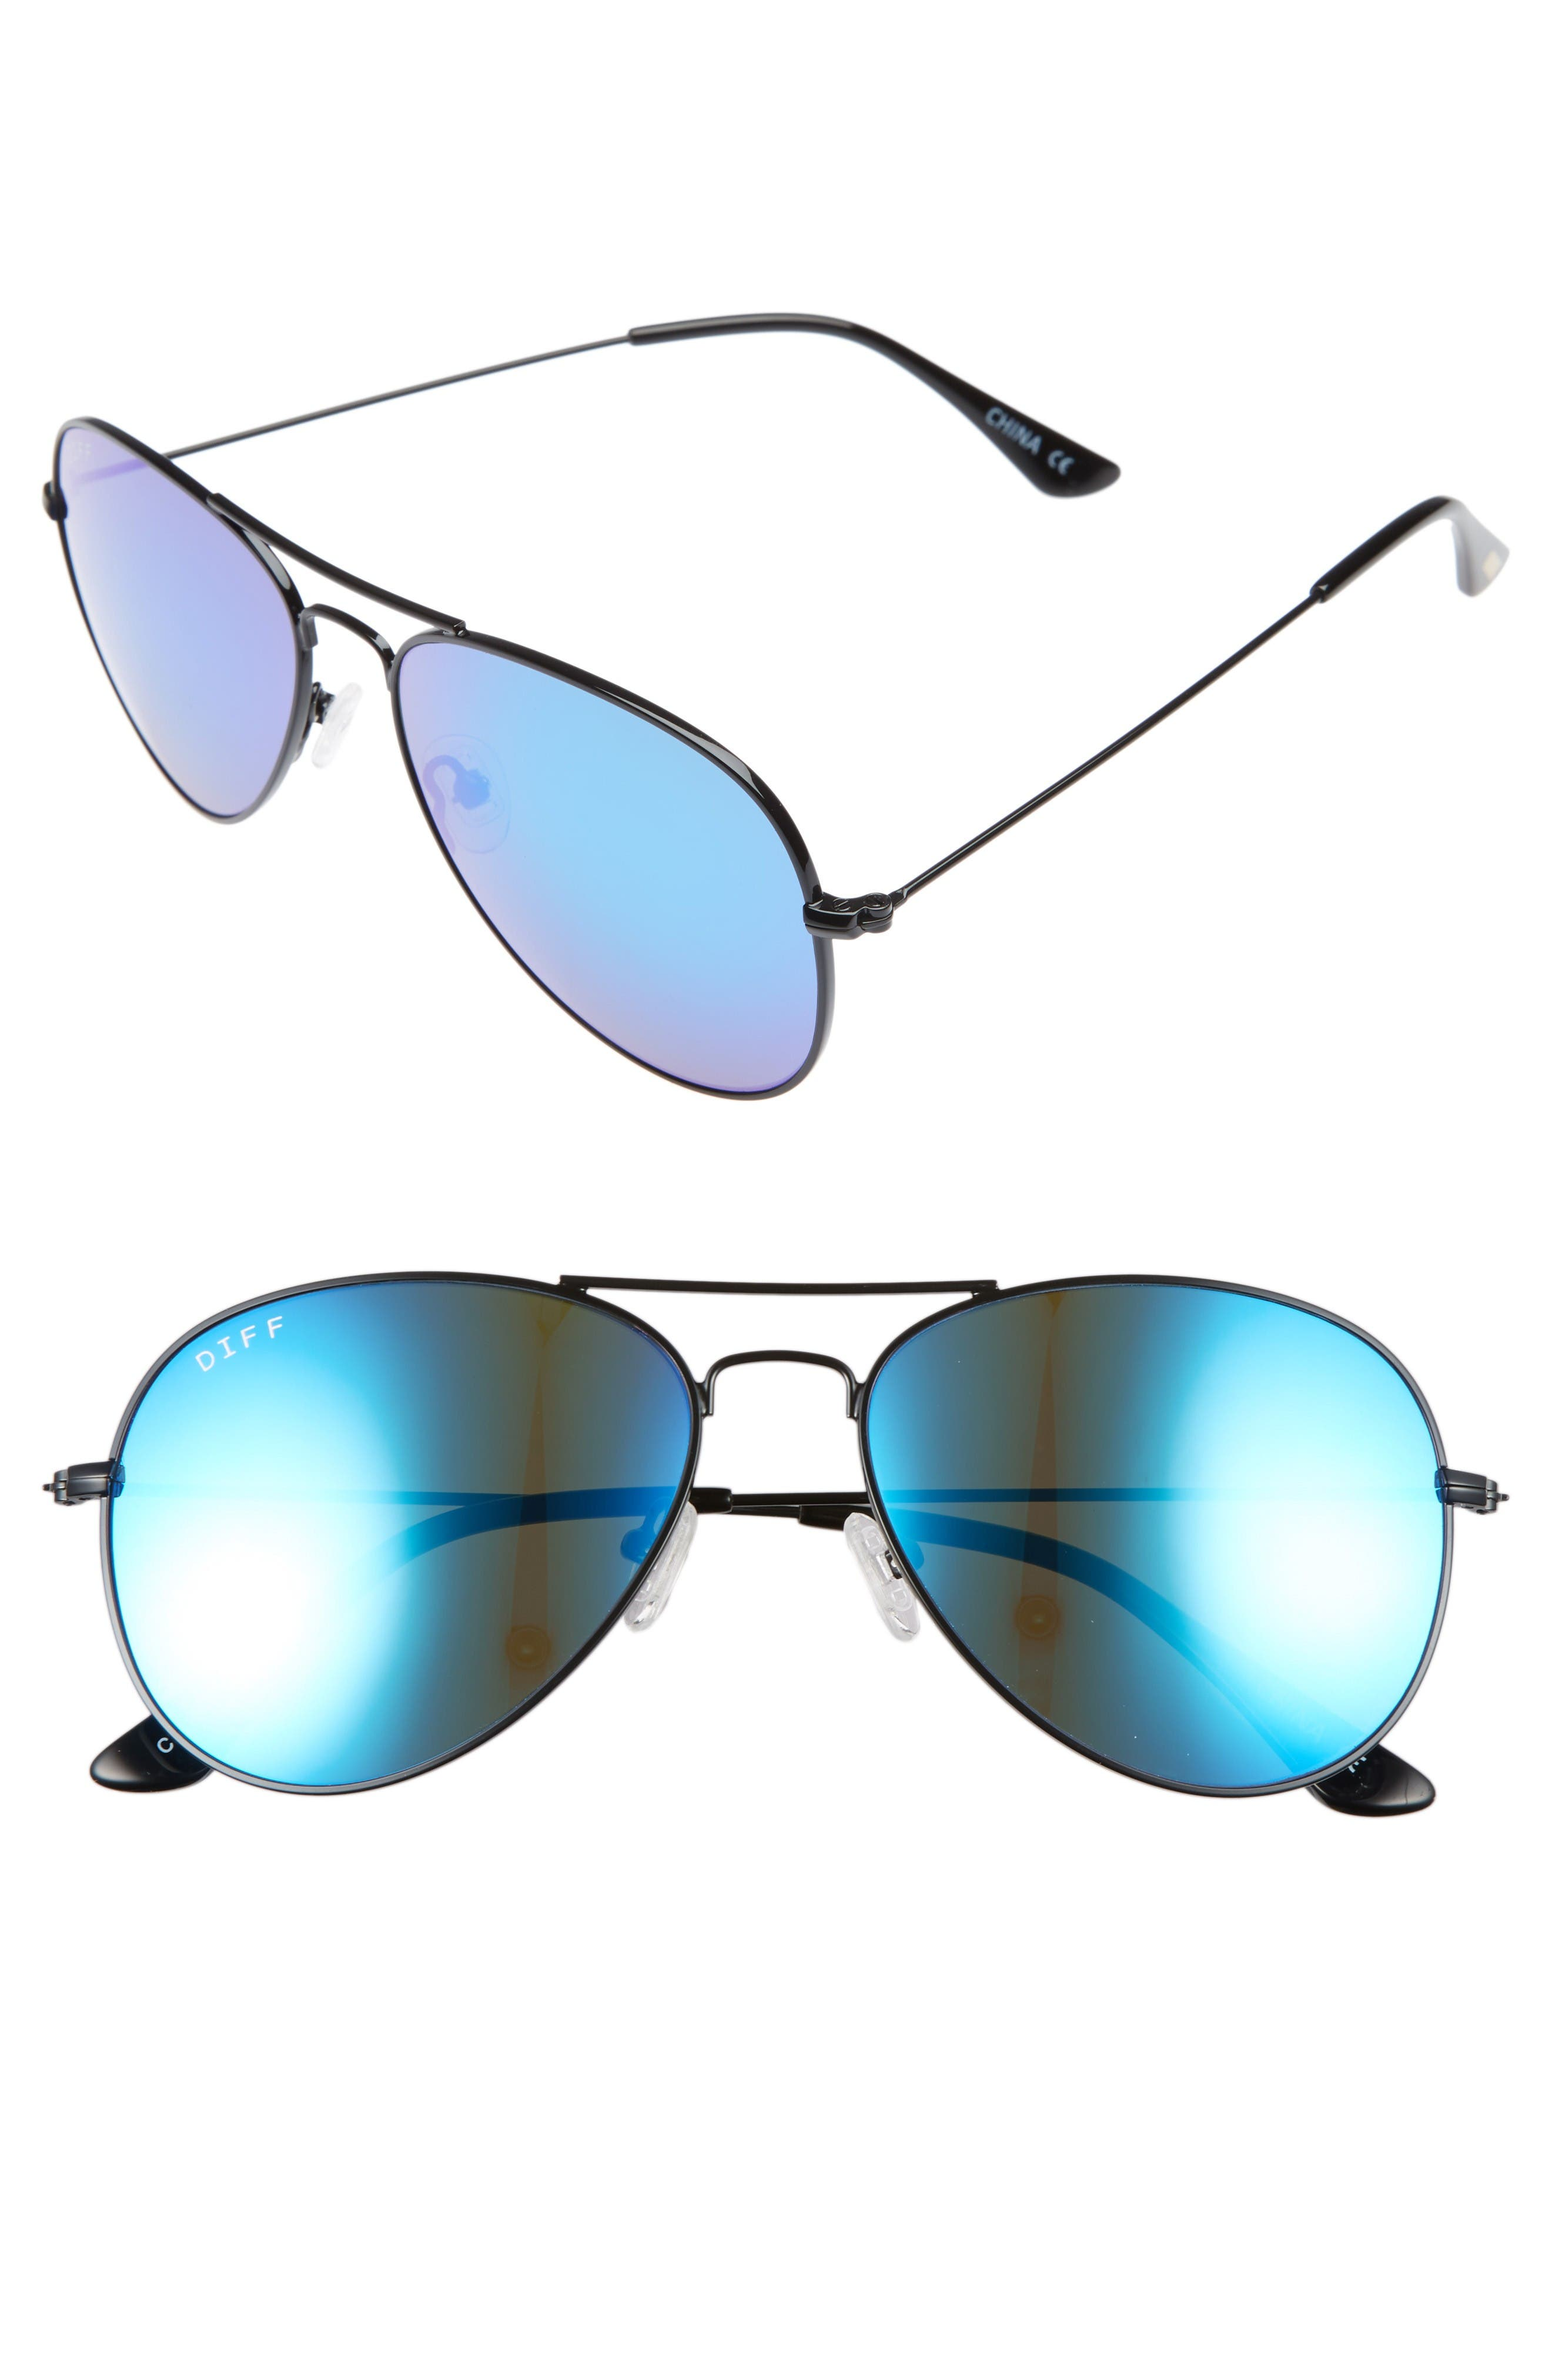 DIFF Cruz 57mm Mirrored Teardrop Aviator Sunglasses